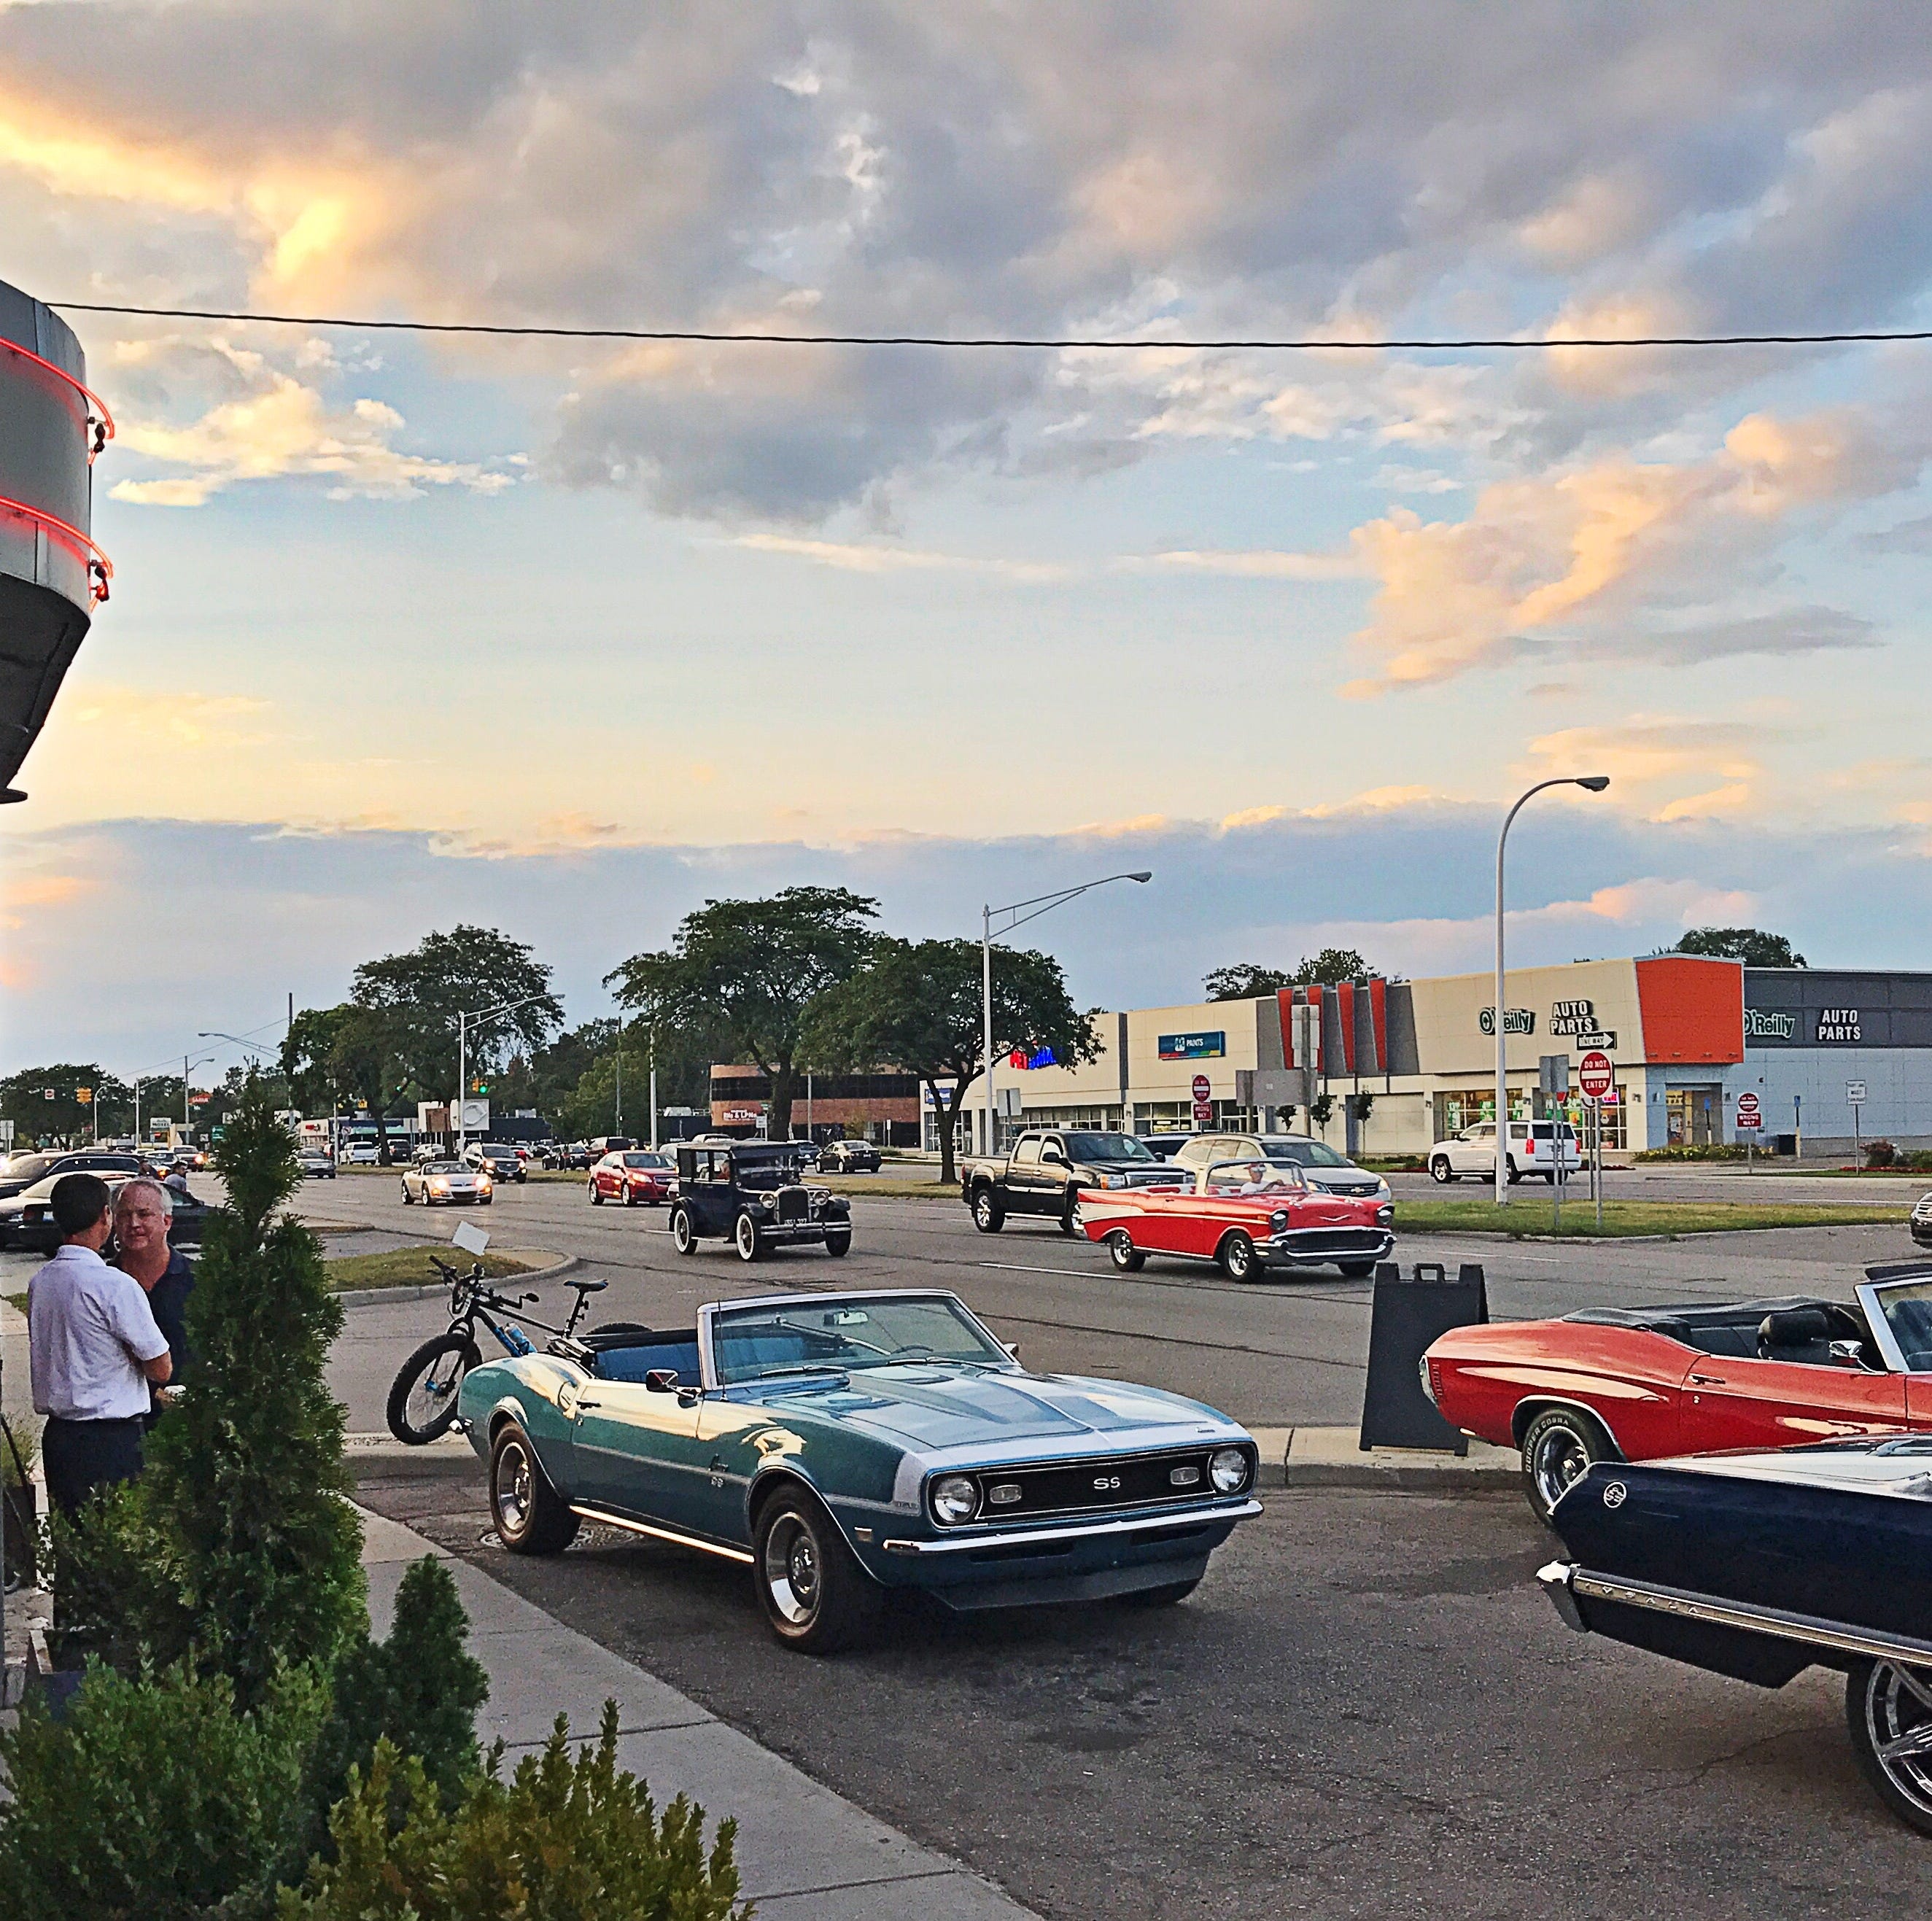 Car-spotting: Your guide to Dream Cruise tours, classics and oddballs